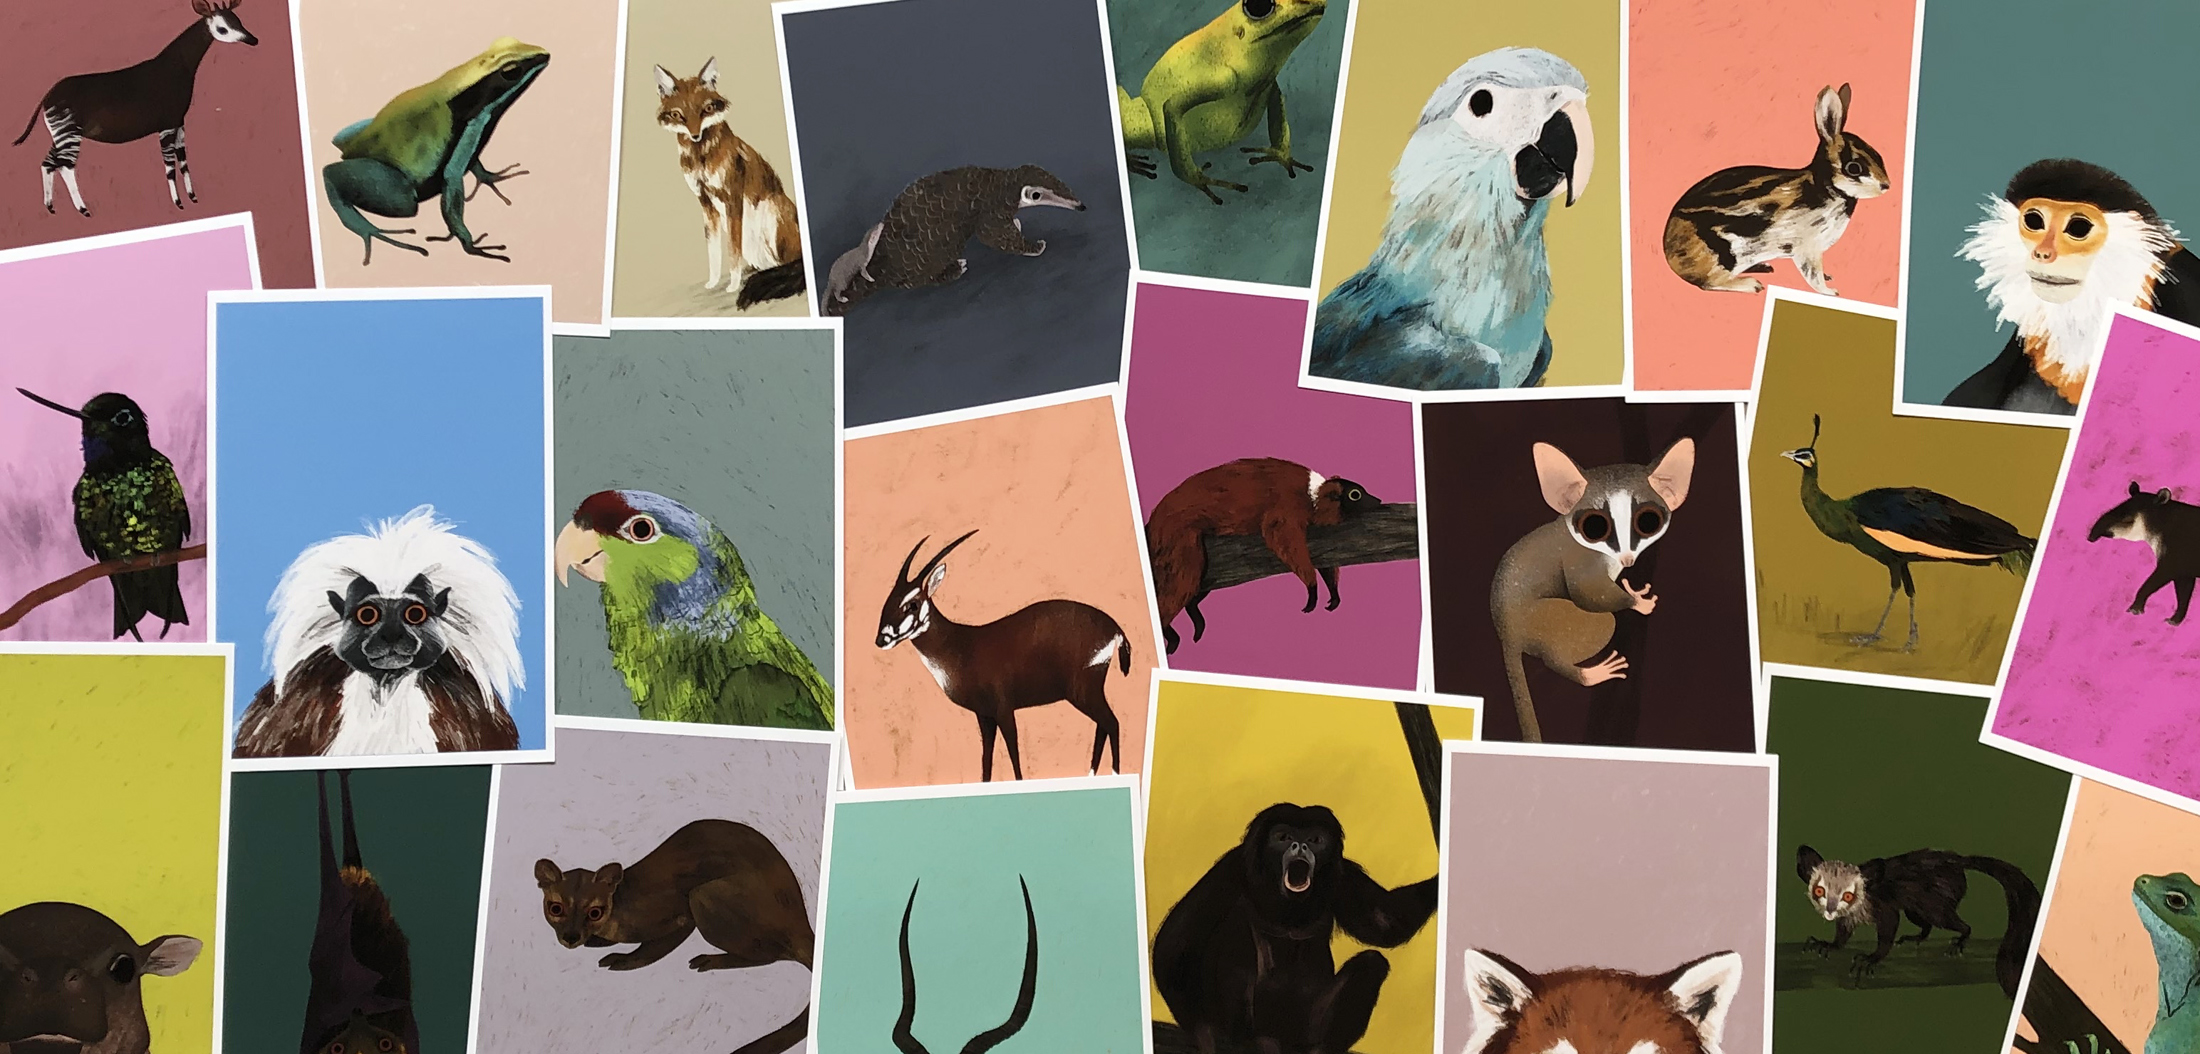 Abigail brownxrainforest trust - Endangered Animals Collaboration